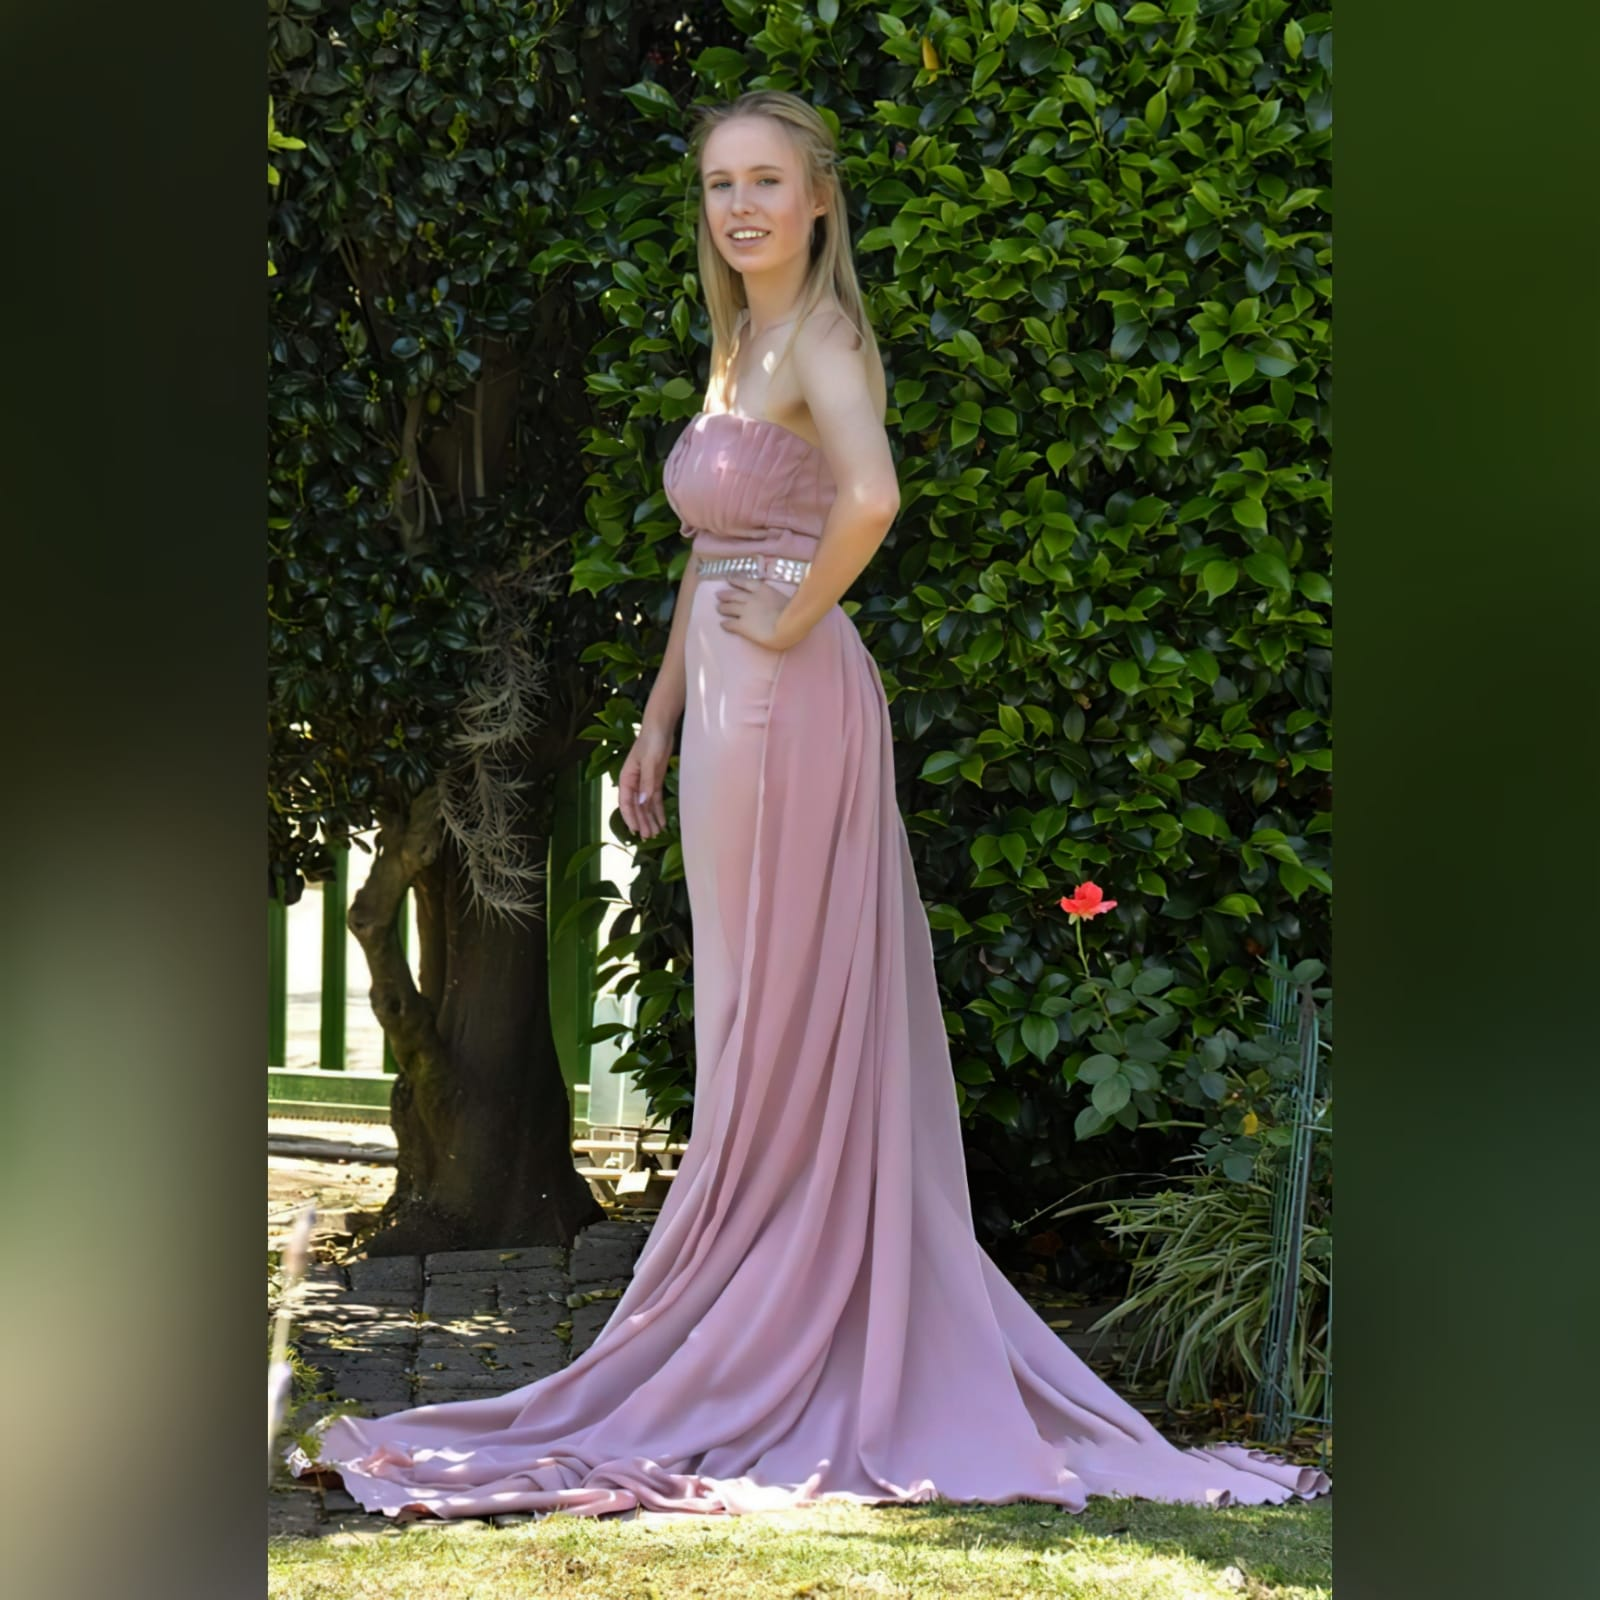 Dusty pink soft mermaid prom dress with a pleated bodice 6 dusty pink soft mermaid prom dress with a pleated bodice, with a train. Extra detachable chiffon train with a beaded belt and removable shoulder straps